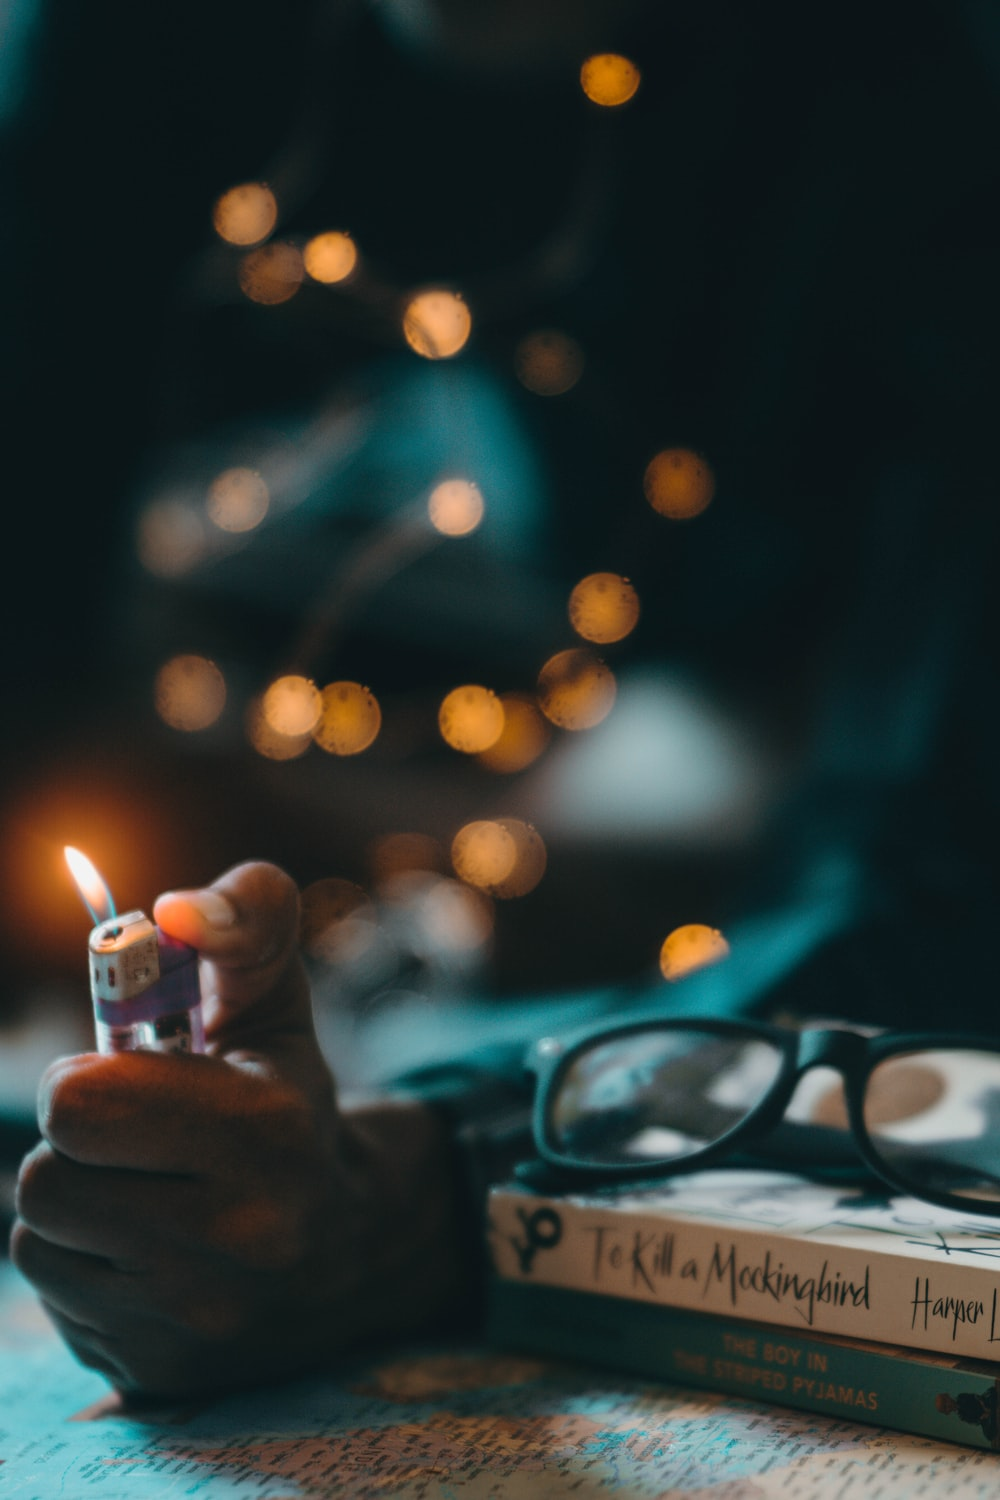 selective focus photography of person lighting up lighter with bokeh background